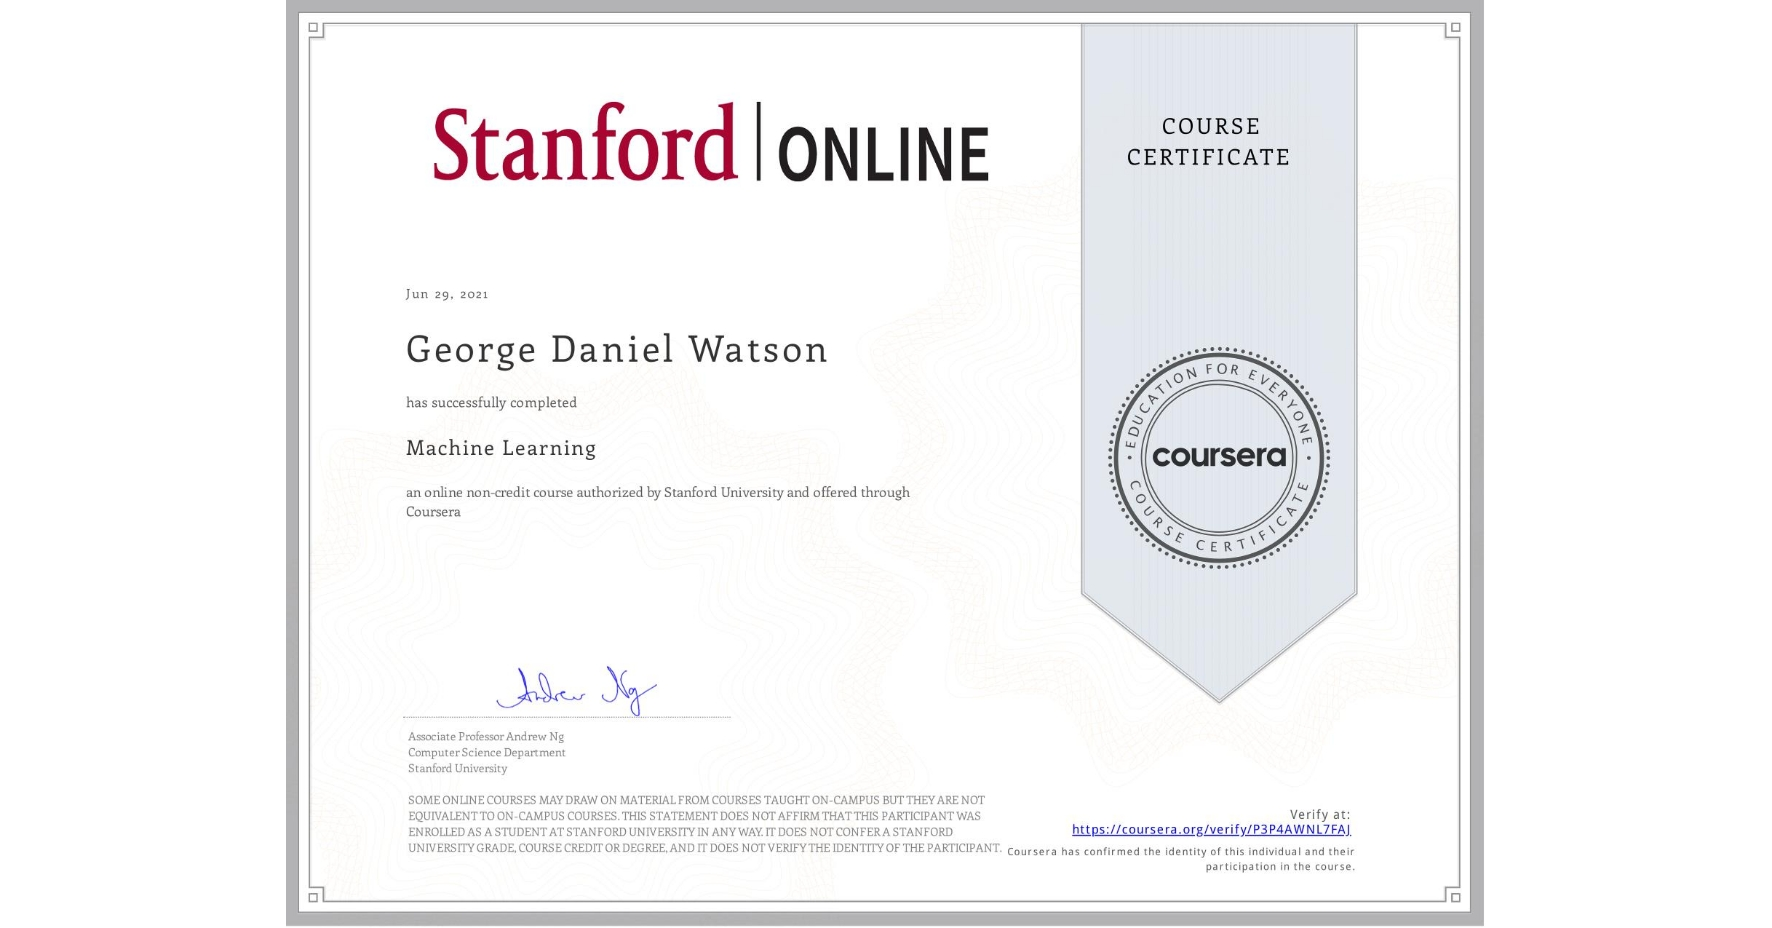 View certificate for George Daniel Watson, Machine Learning, an online non-credit course authorized by Stanford University and offered through Coursera